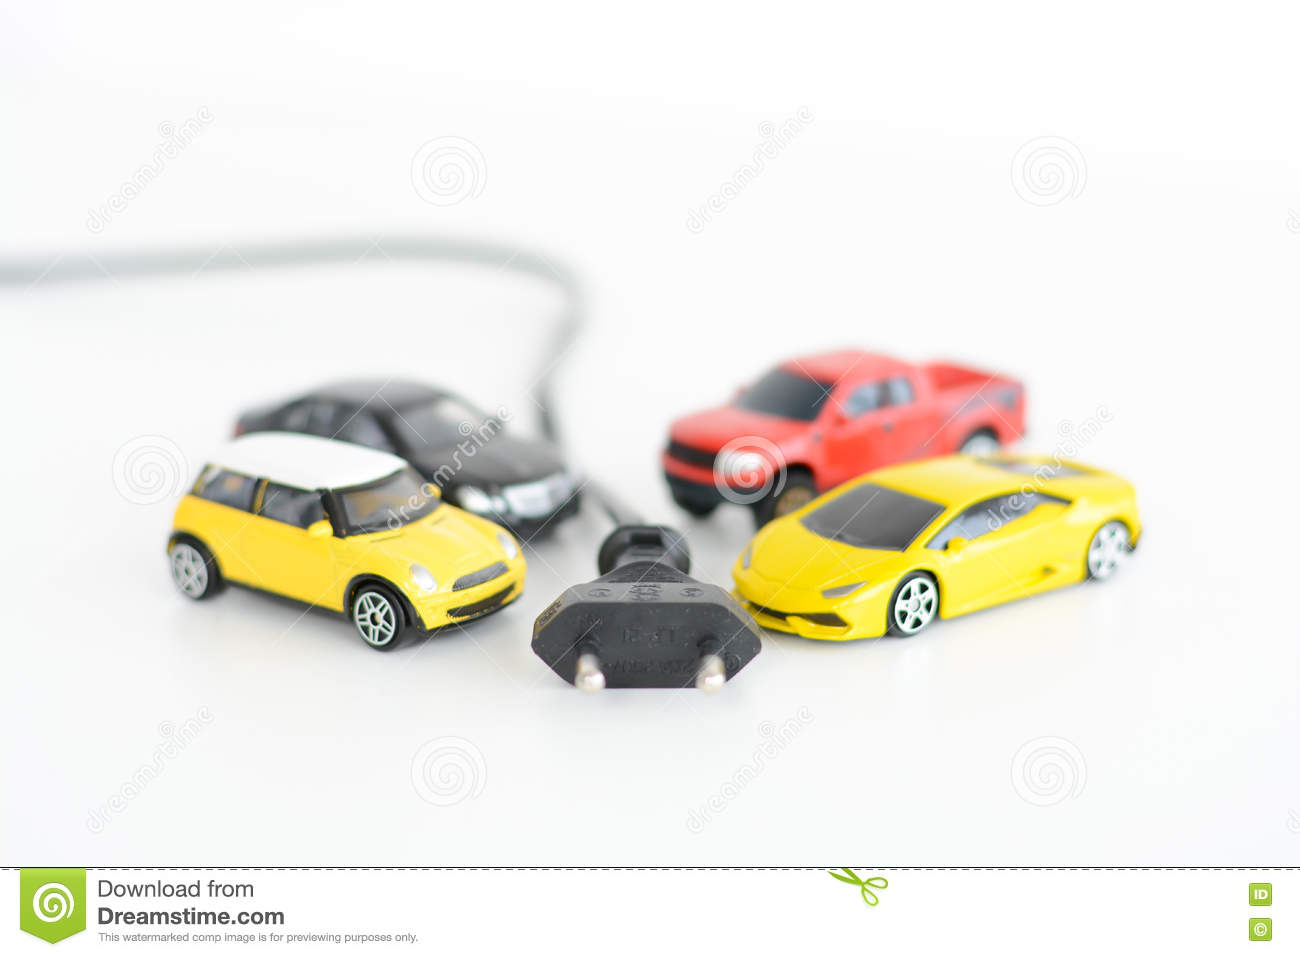 Electric Cars Concept With Many Toys Vehicles On White Background